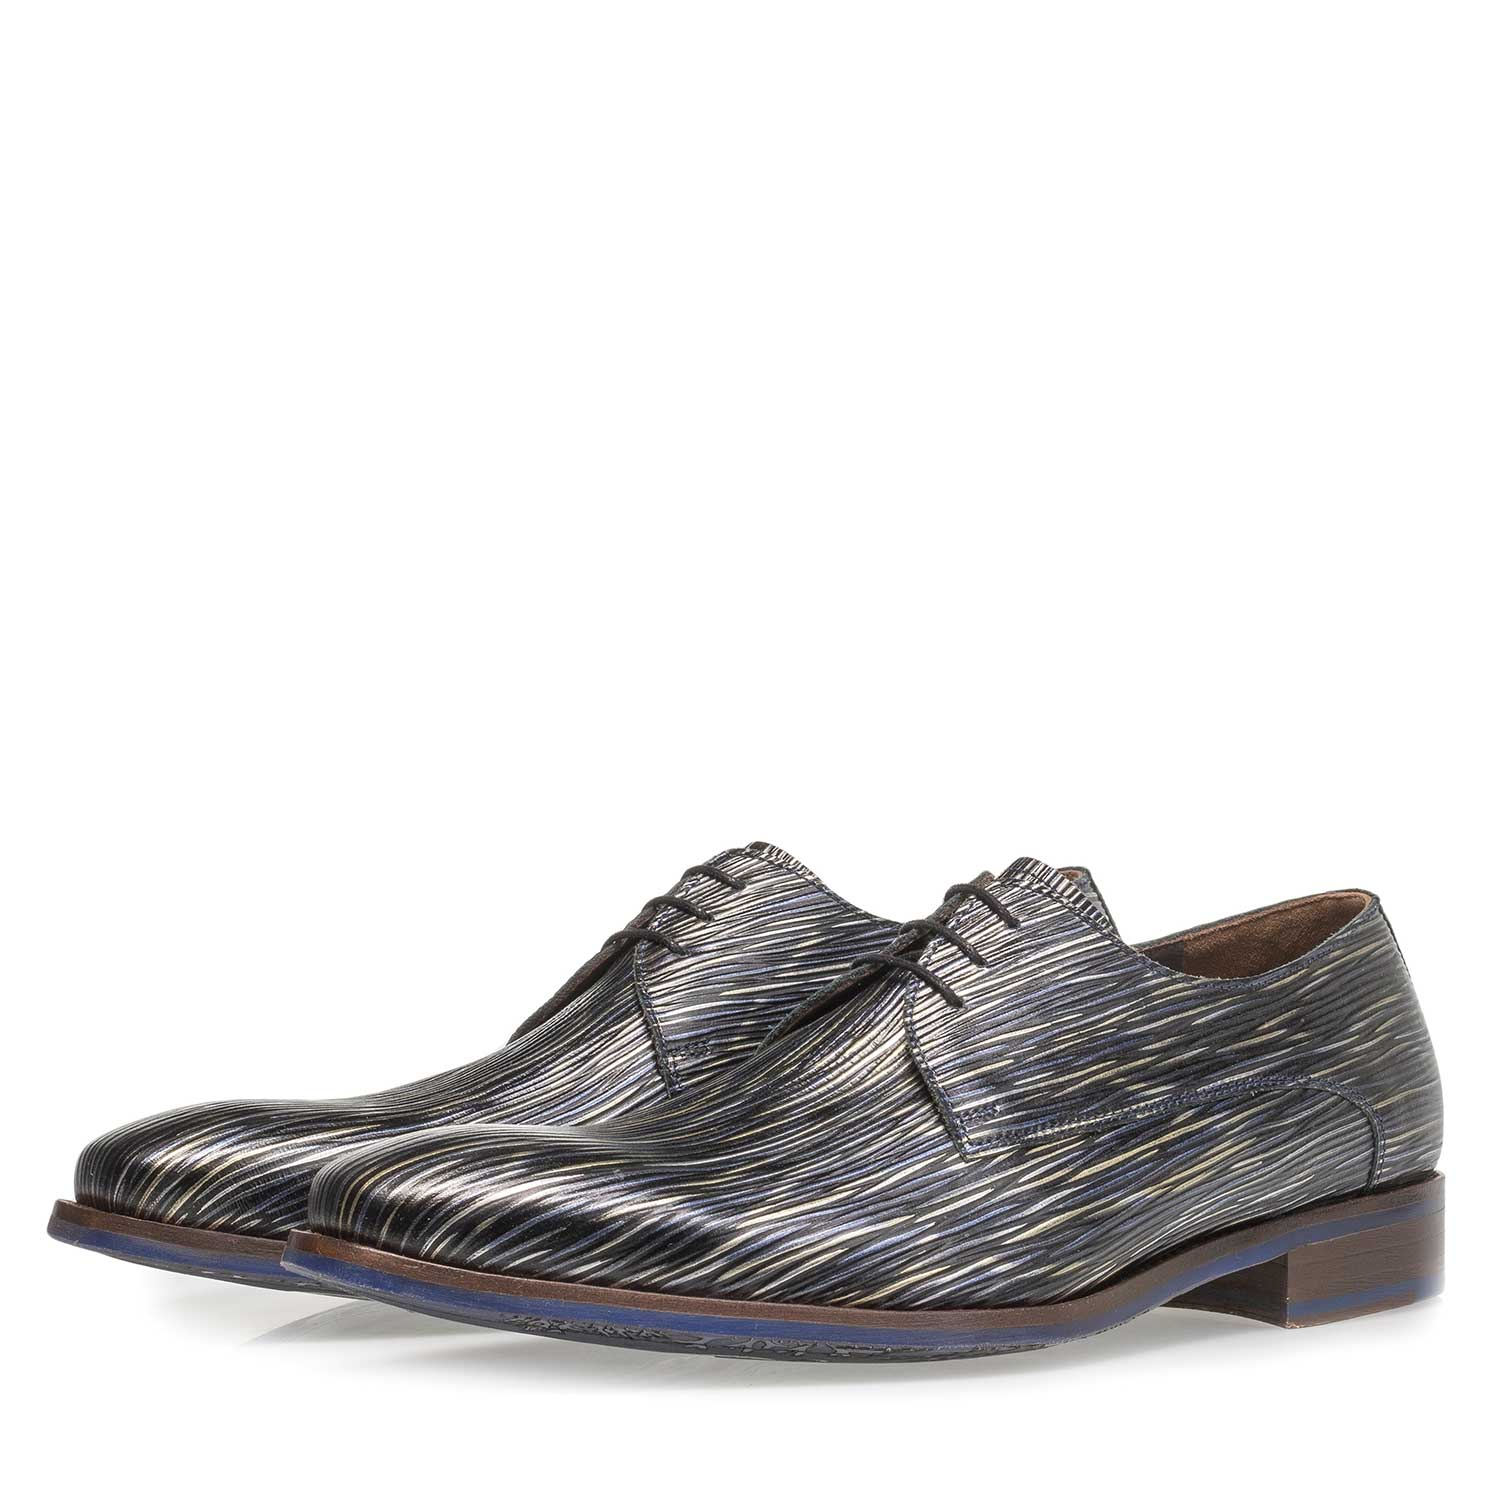 18159/08 - Dark blue lace shoe with striped metallic print